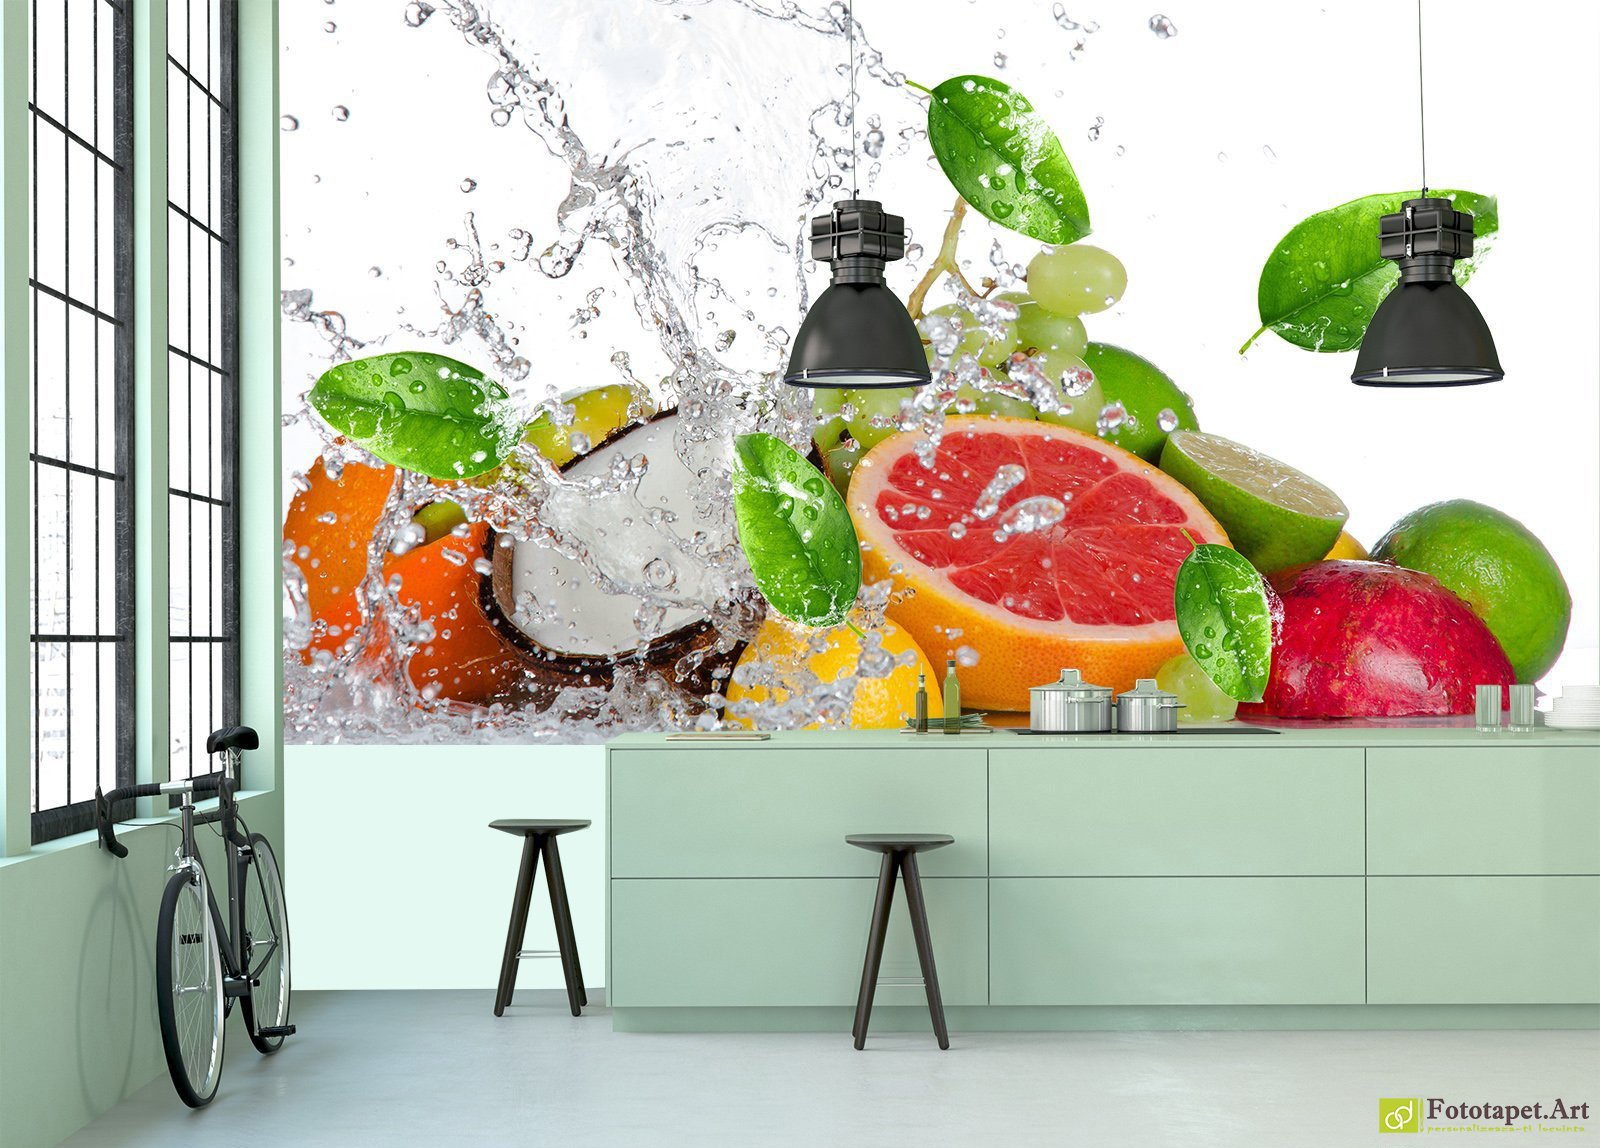 Kitchen Wallpaper Wall Murals Fruit Under Water Fototapet Art Guaranteed For 5 Years Printed Using The Latest Hp Latex Printing Technology This Wall Mural Is Easy To Fit Eco Friendly Non Toxic